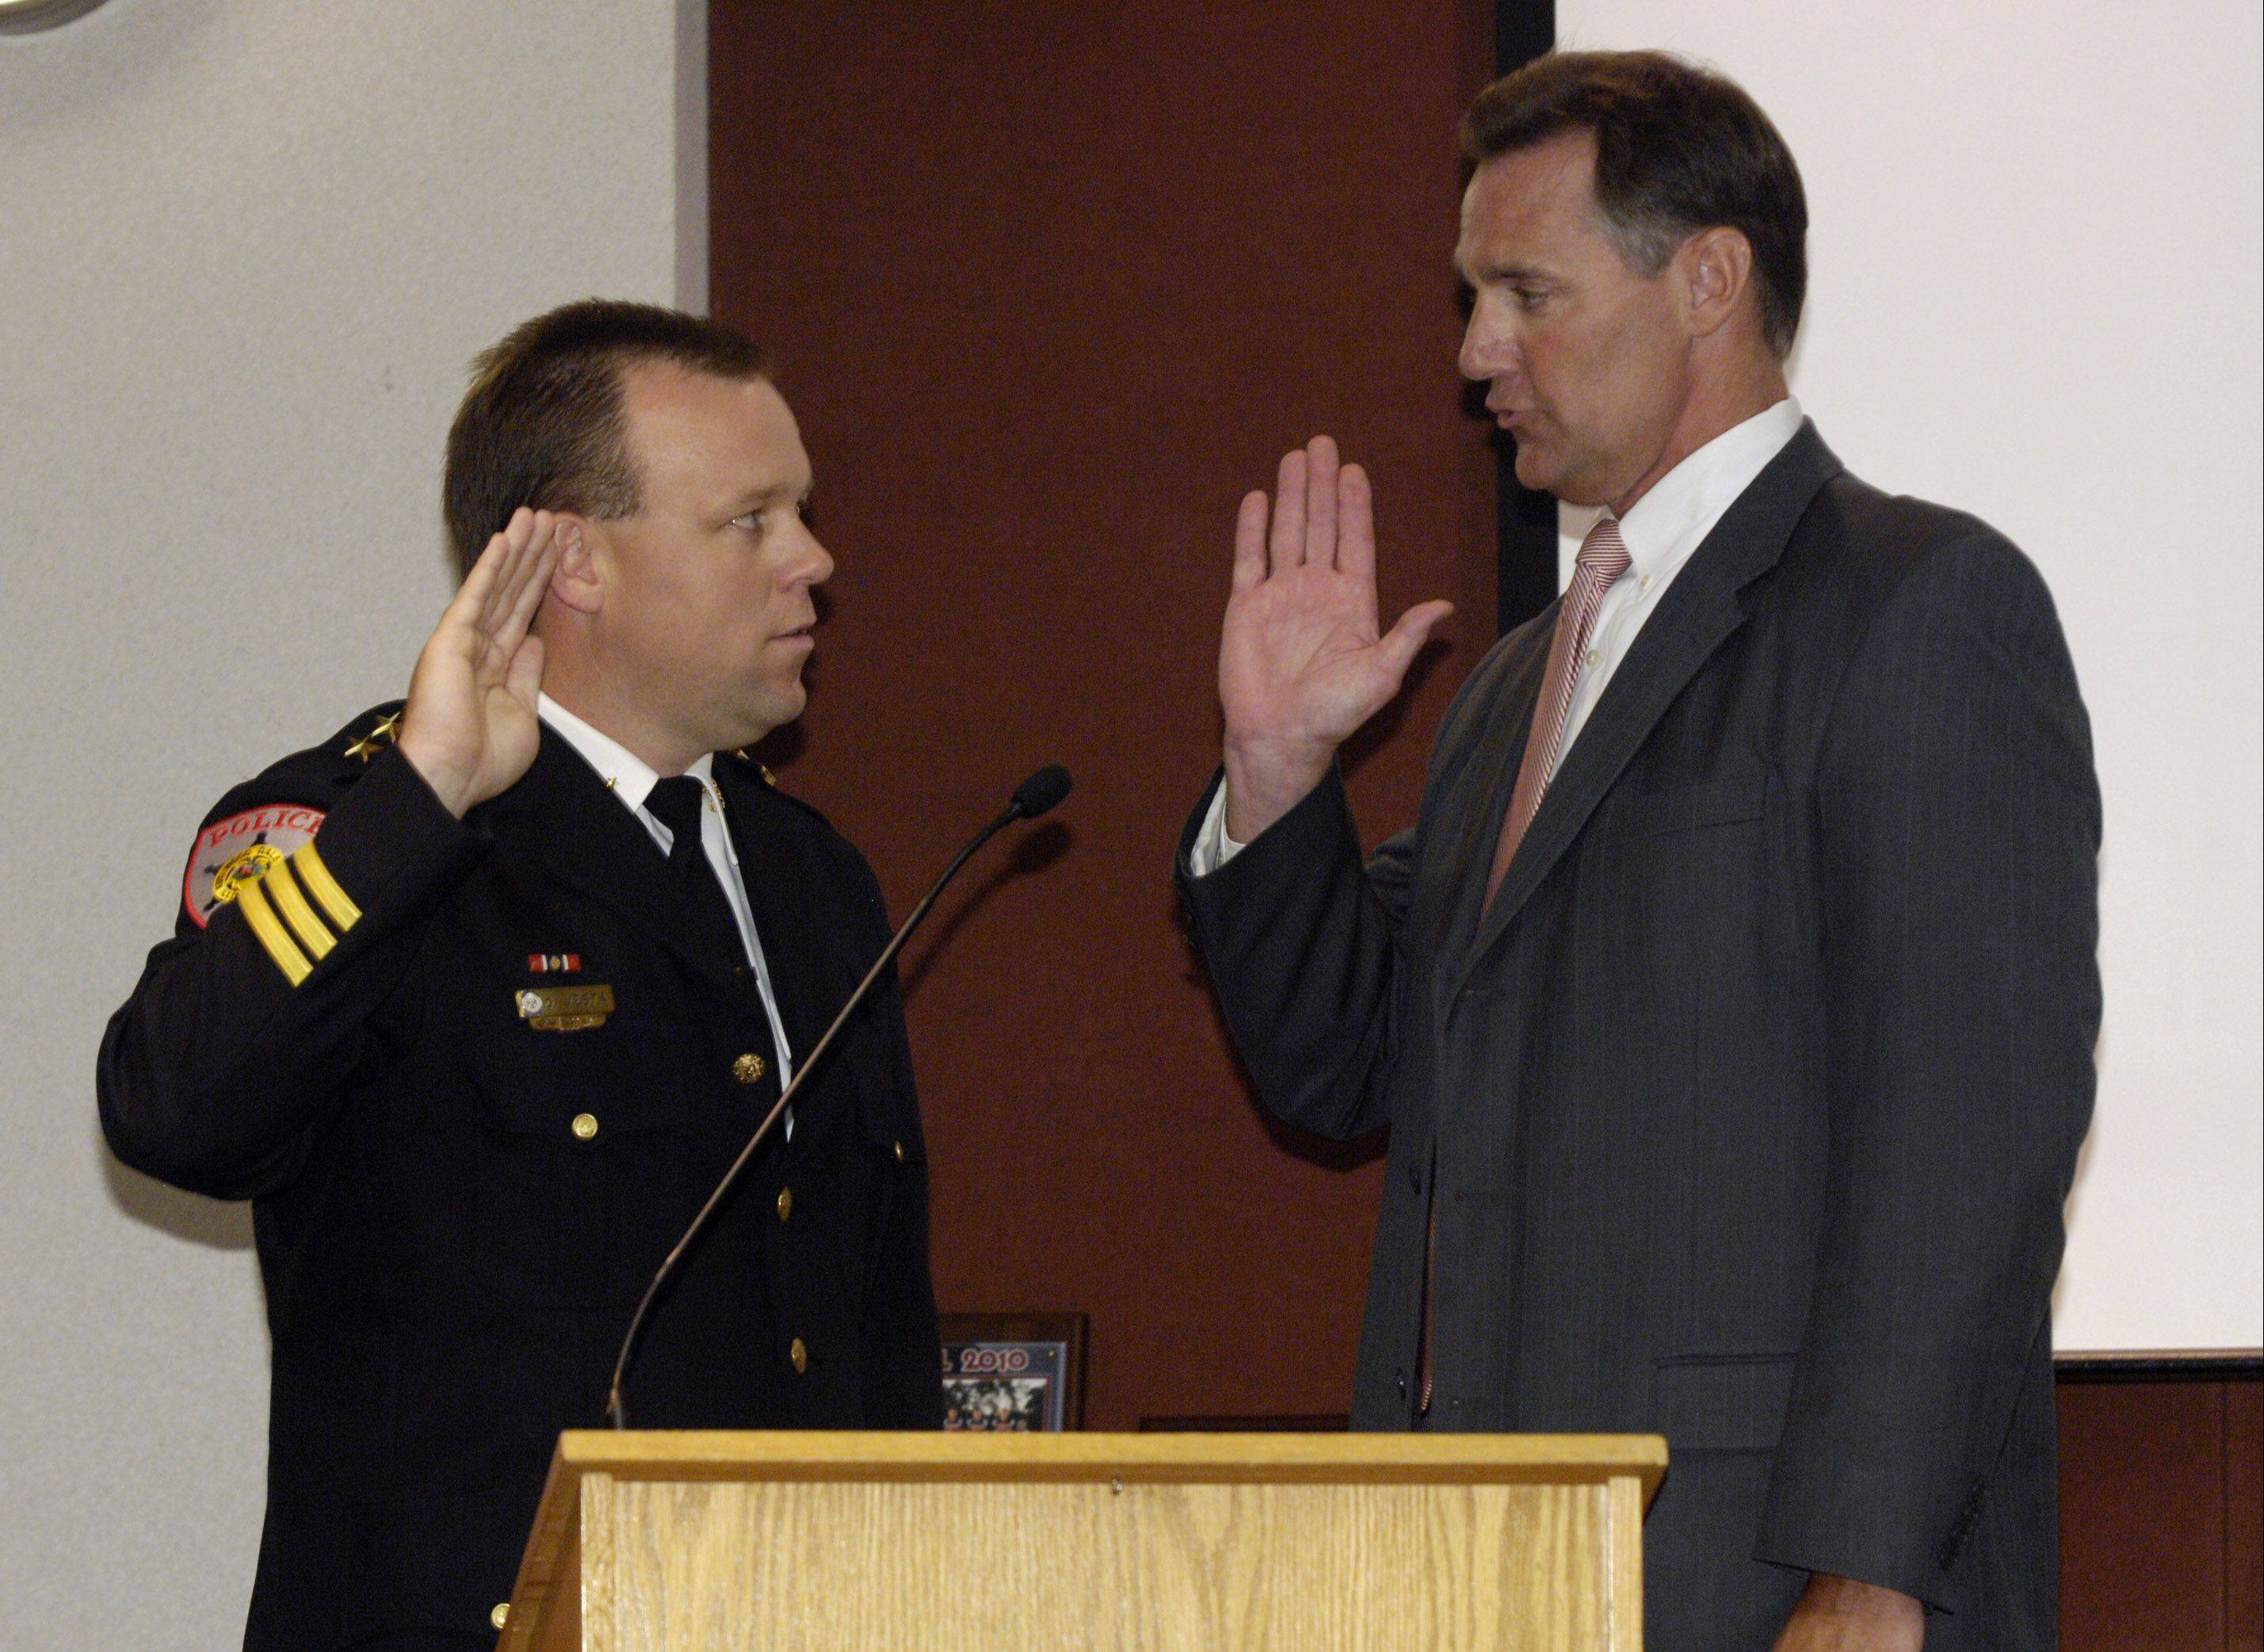 Wood Dale city attorney Patrick Bond swears in Greg Vesta as the new police chief. Greg is a former deputy chief and one of the youngest police chiefs in DuPage County.